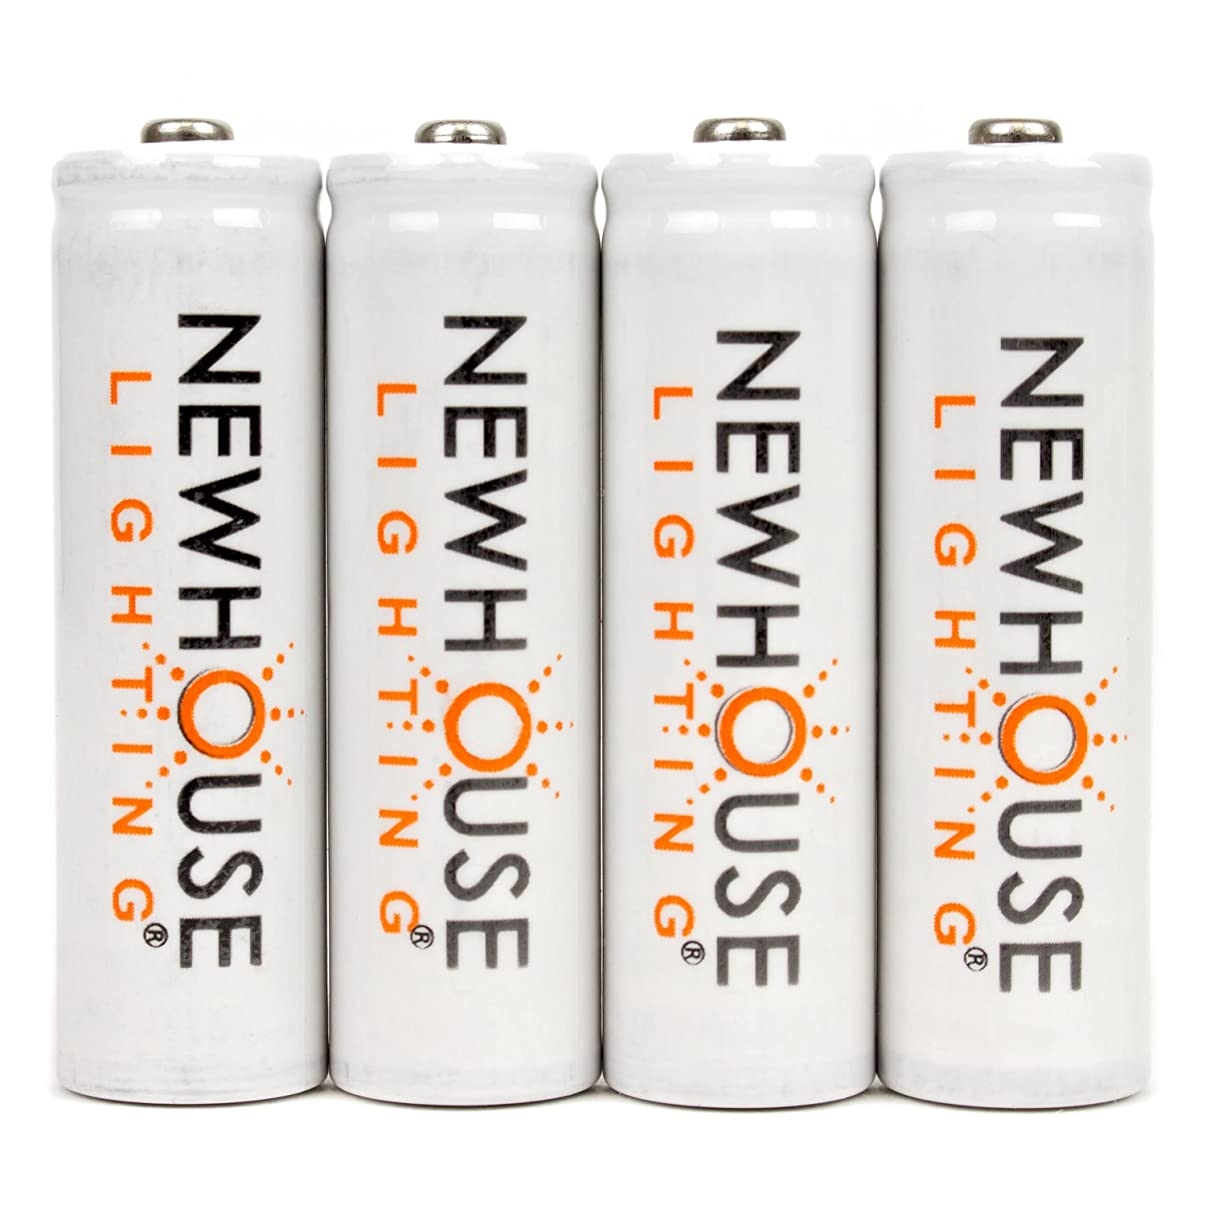 Newhouse Lighting Rechargeable 1500mah NiMH AA Batteries Optimized for Solar Lights, 4 Count